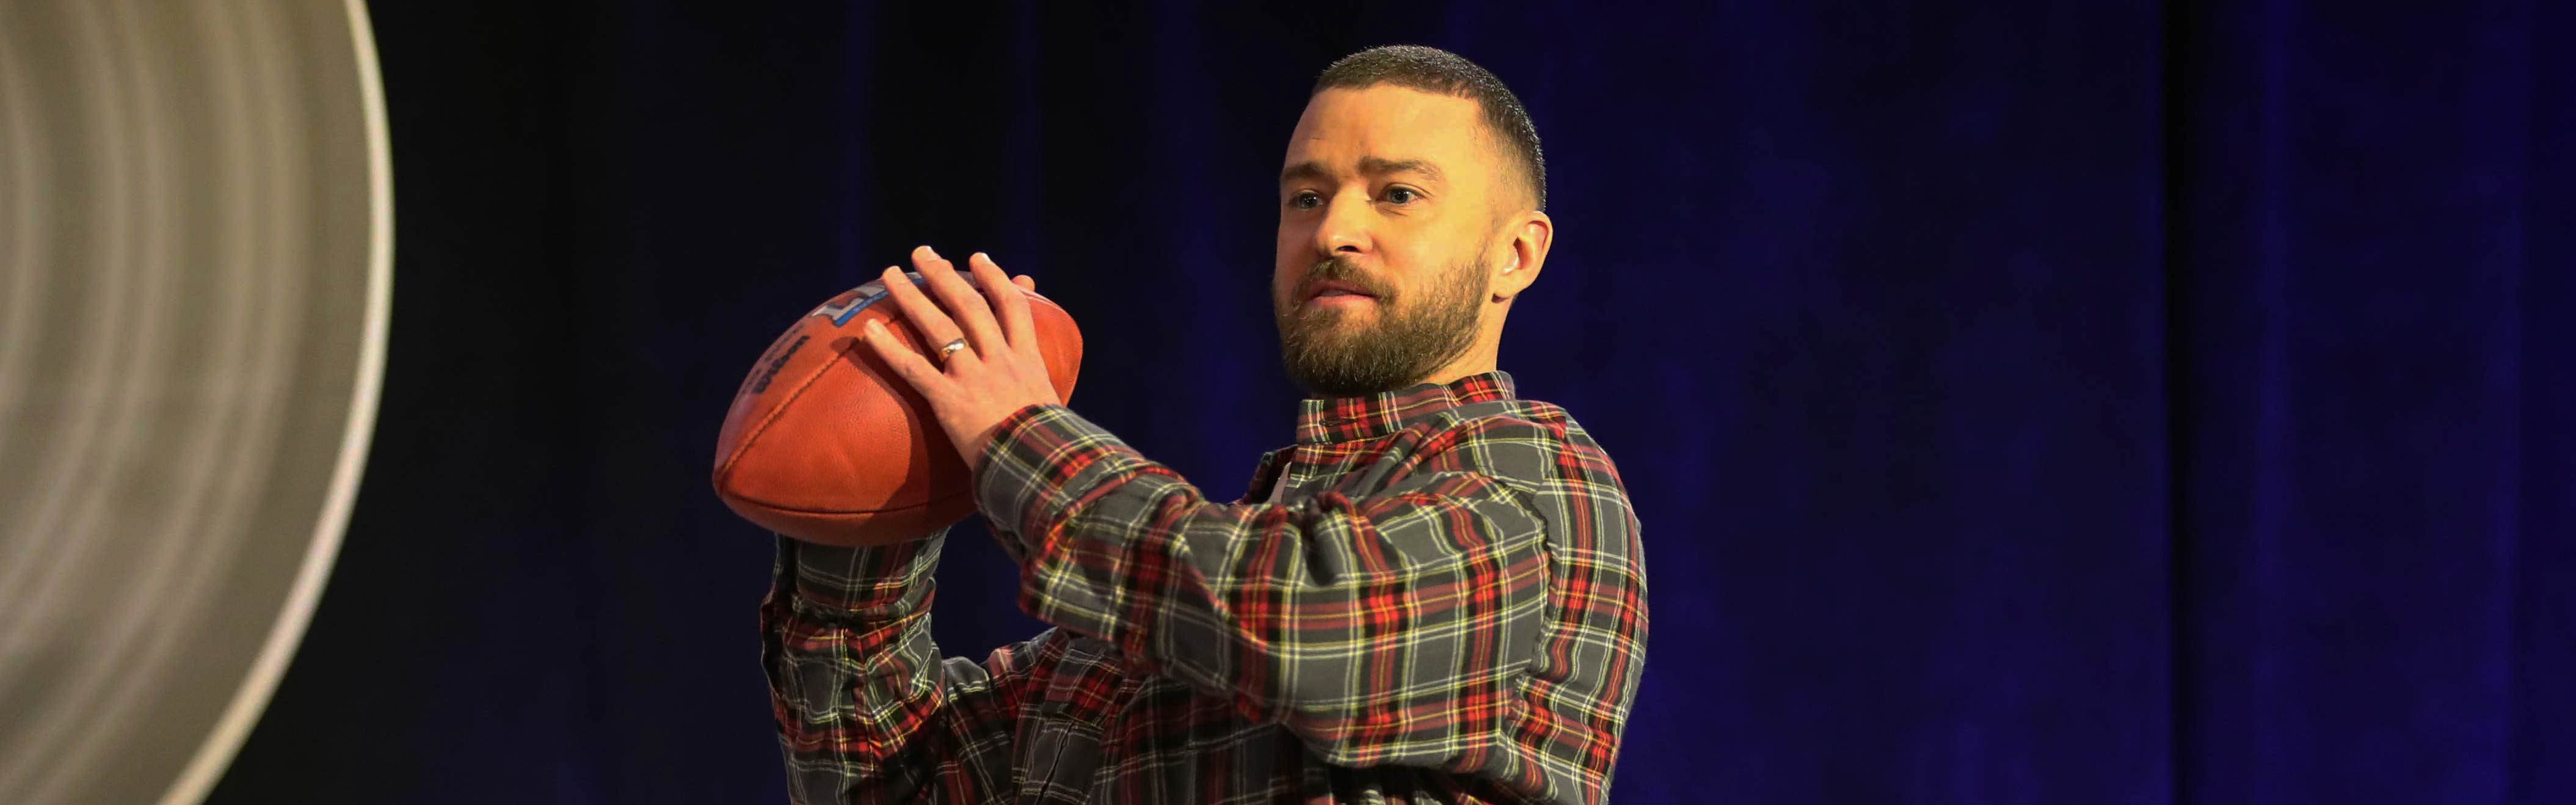 Justin-Timberlake-2018-Super-Bowl-Halftime-Show-Conference-February-01-2018-1